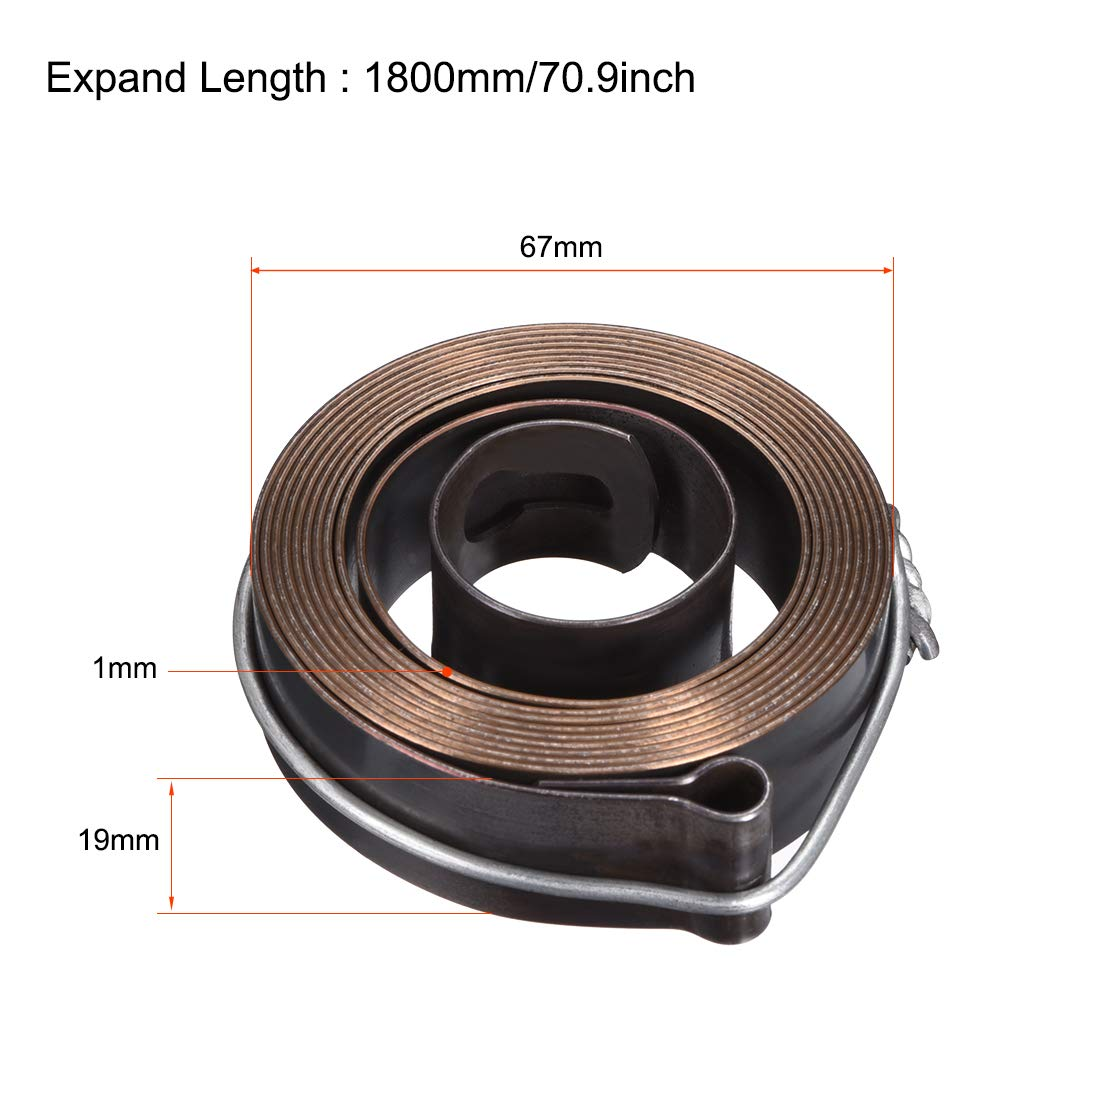 ODxWxT 1800mm Long 67 x 19 x 1mm Quill Spring Feed Return Coil Spring Assembly uxcell Drill Press Return Spring